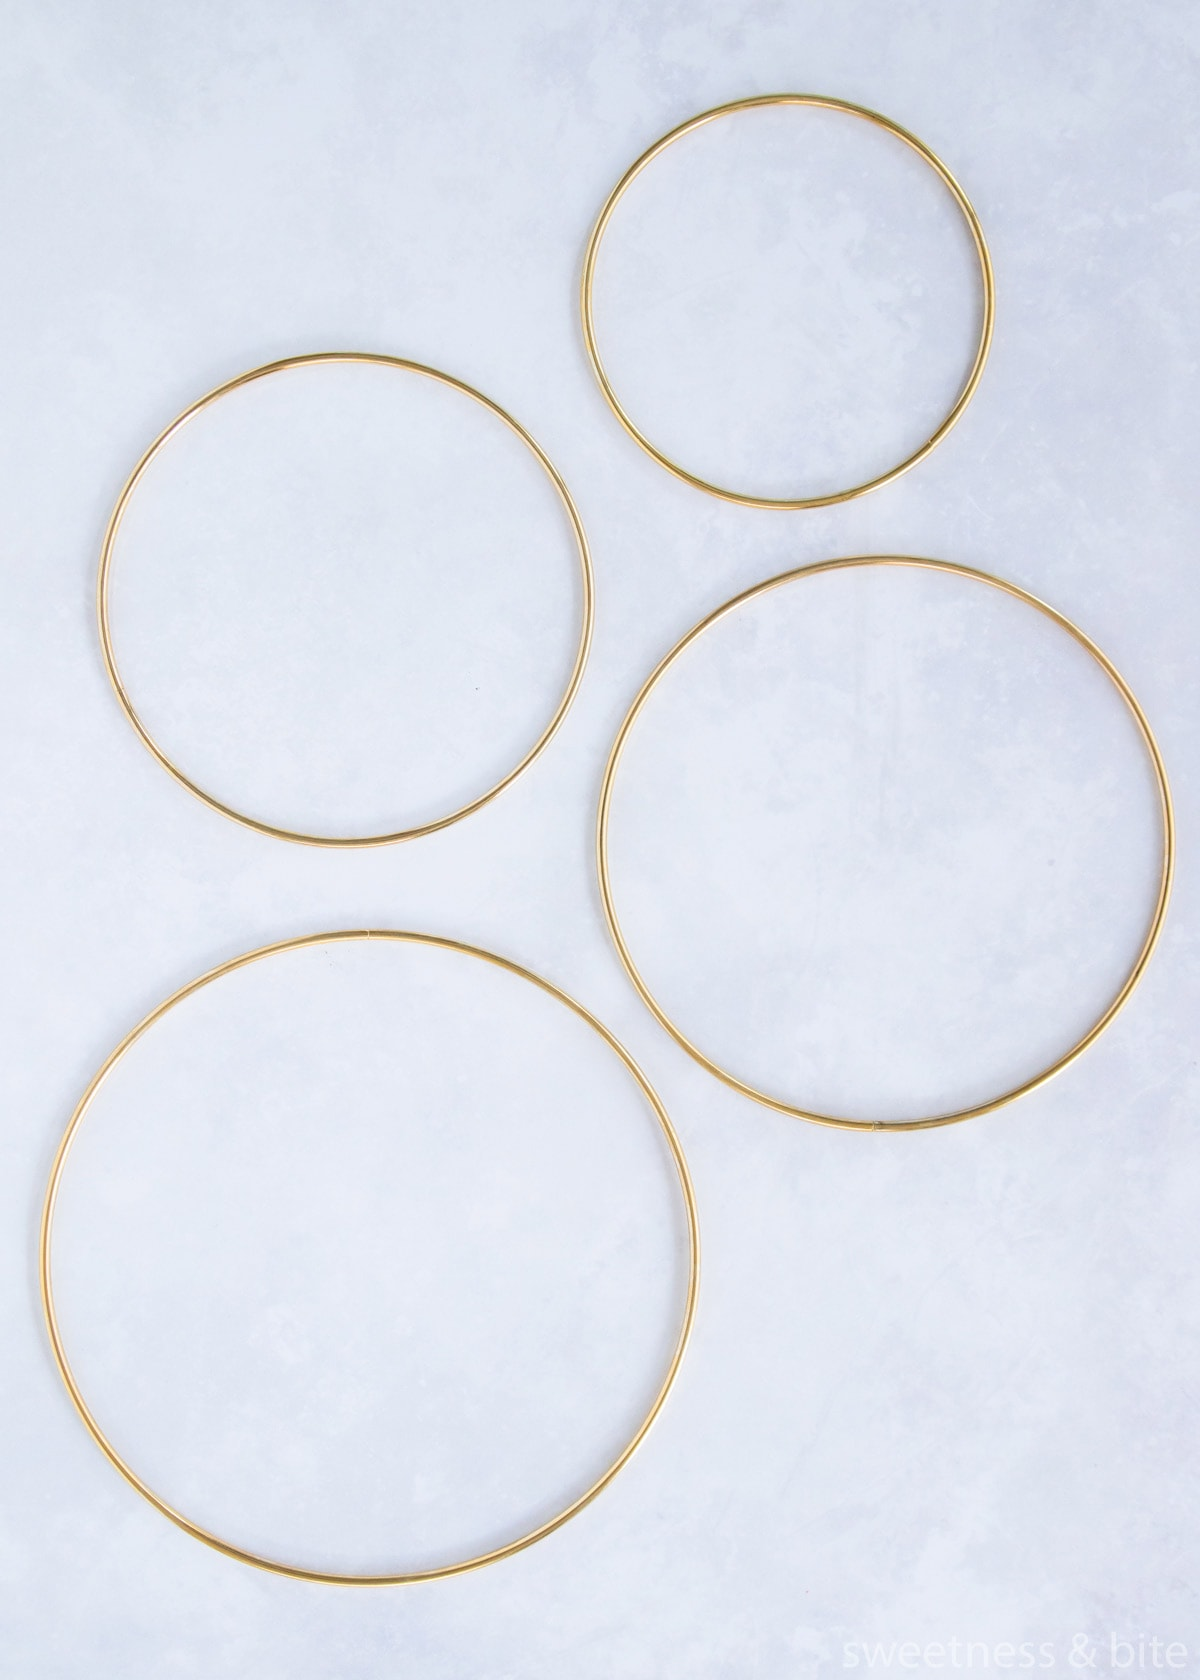 Four gold coloured metal craft hoops of varying sizes.